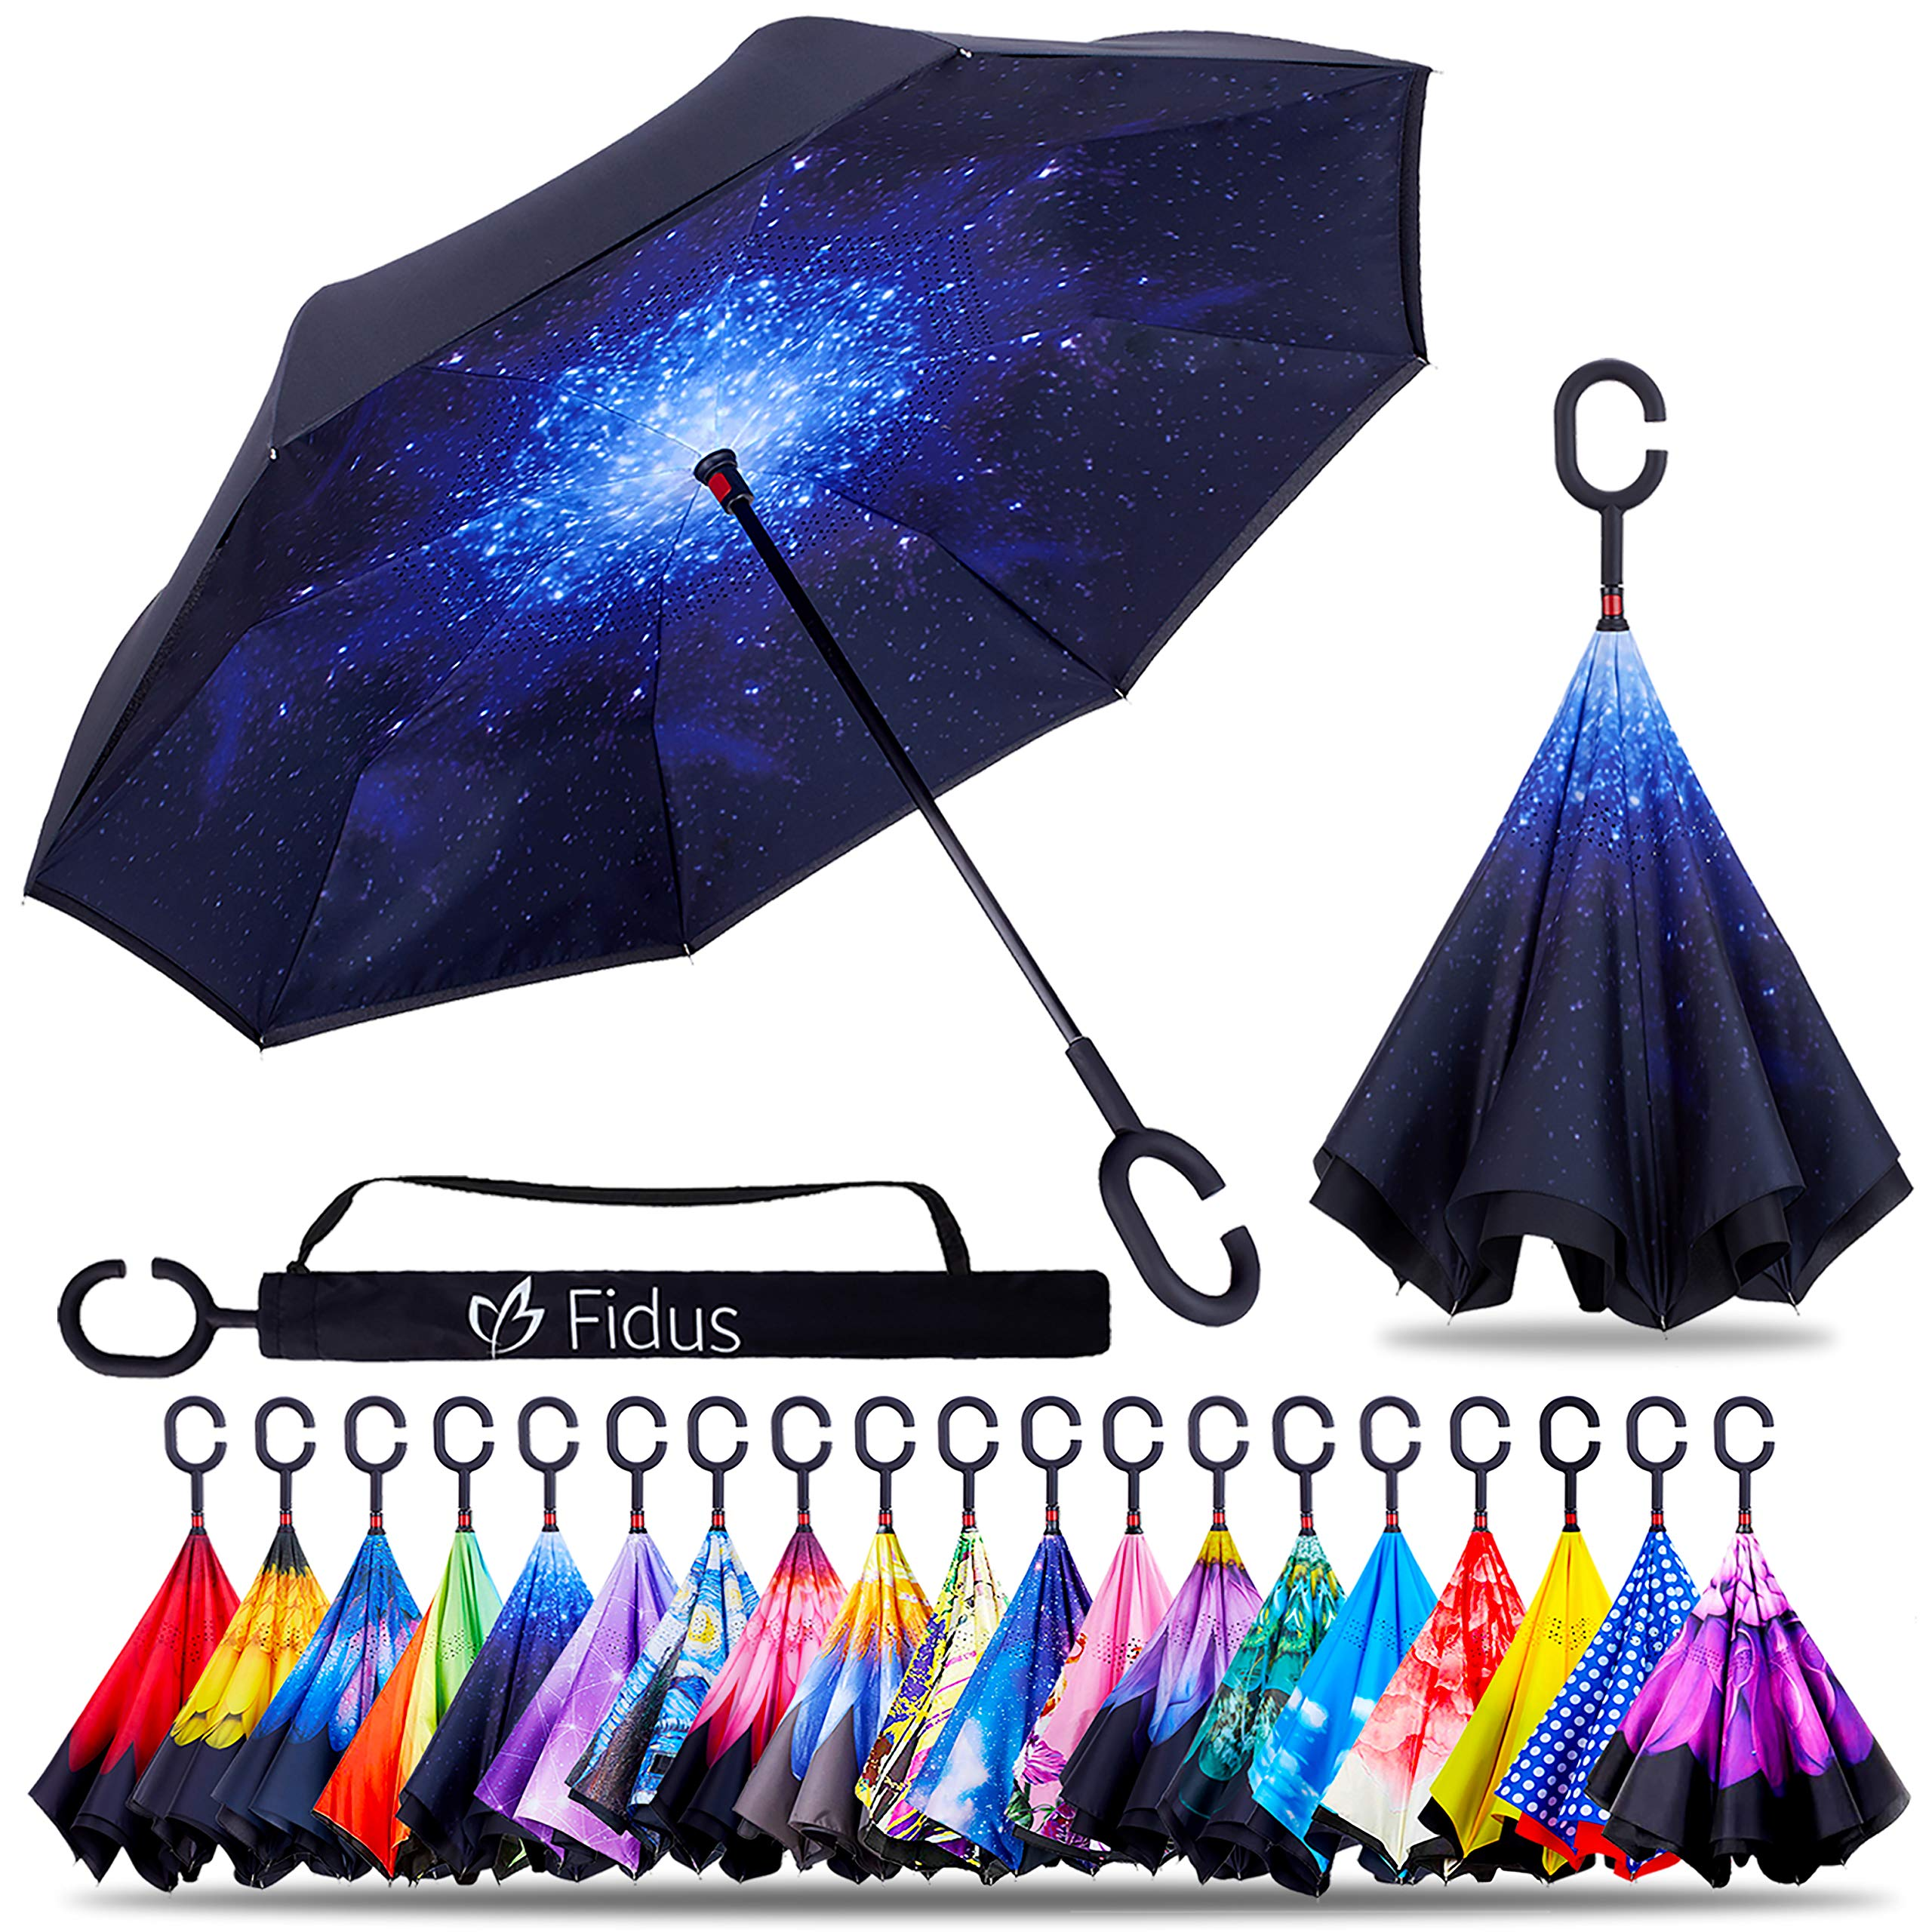 Fidus Double Layer Inverted Reverse Umbrella, Winproof Waterproof Folding UV Protection Self Stand Upside Down Large Car Rain Golf Outdoor Rain Umbrella with C-Shaped Handle for Men Women(Starry Sky)